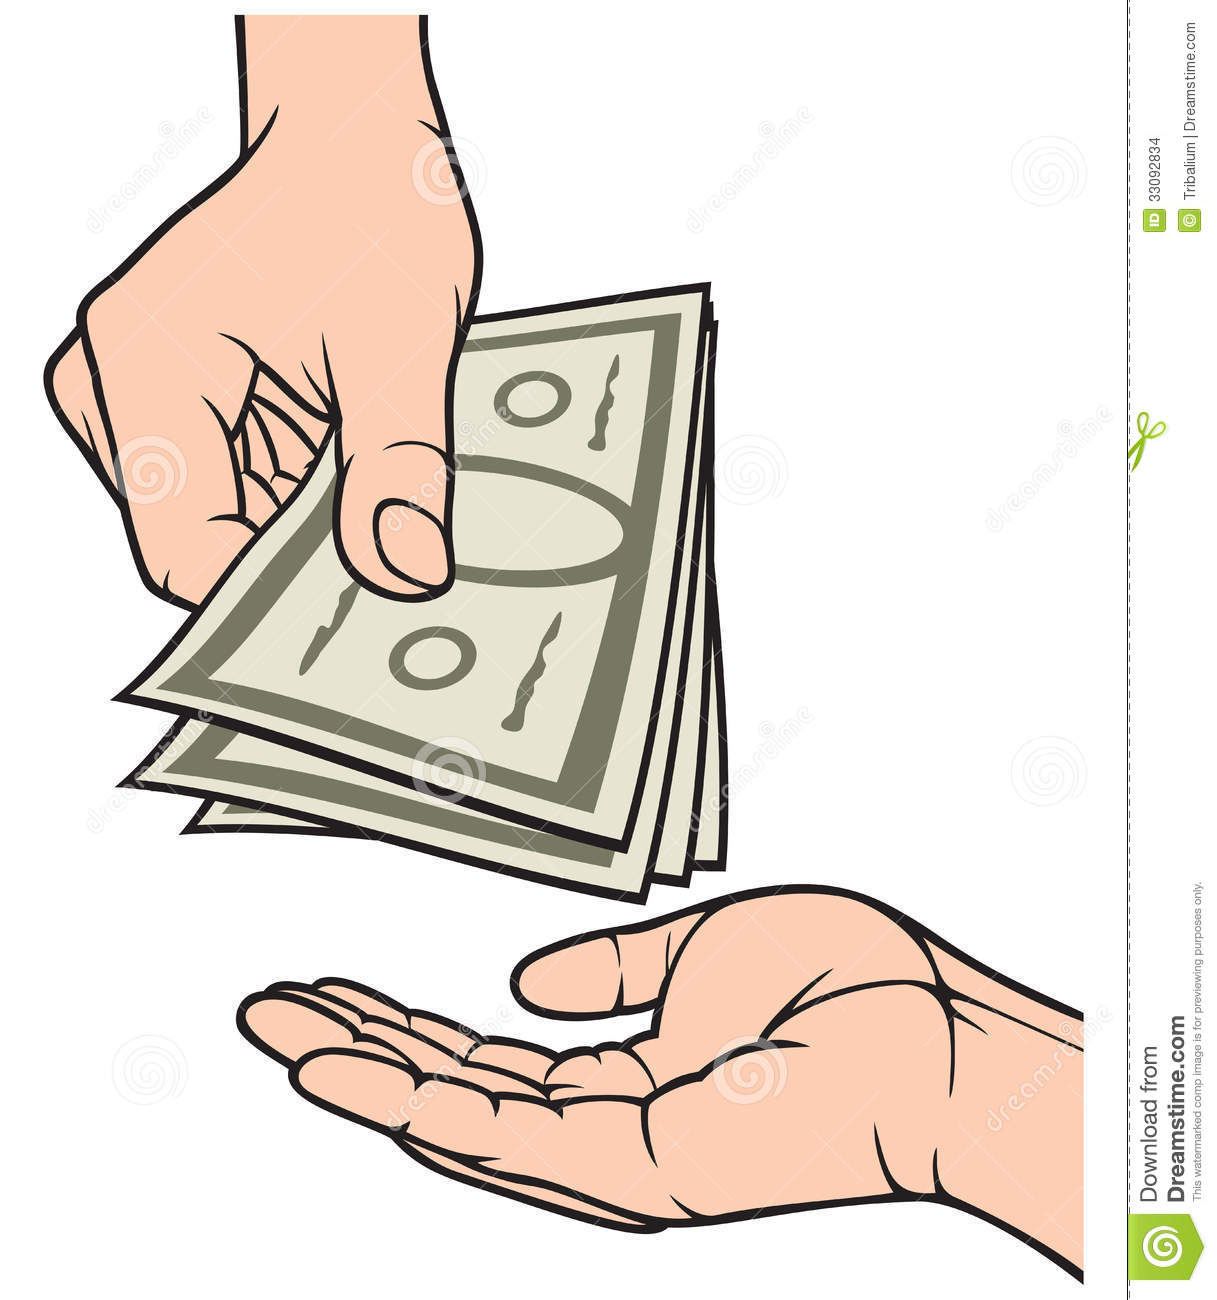 Hand Giving Money To Other Hand Hand With Money Hand Holding